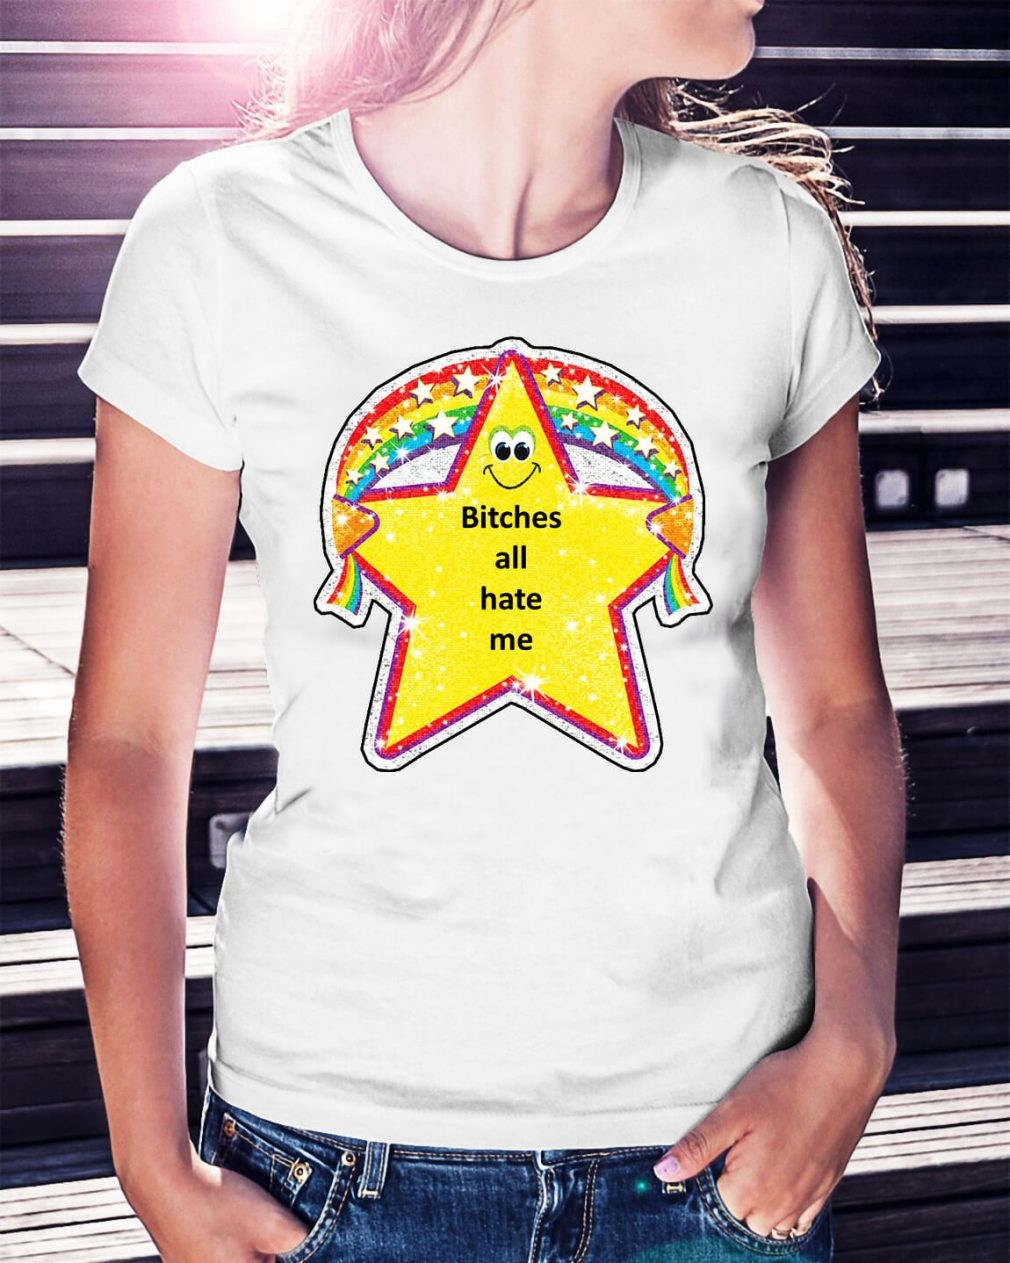 Bitches all hate me shirt